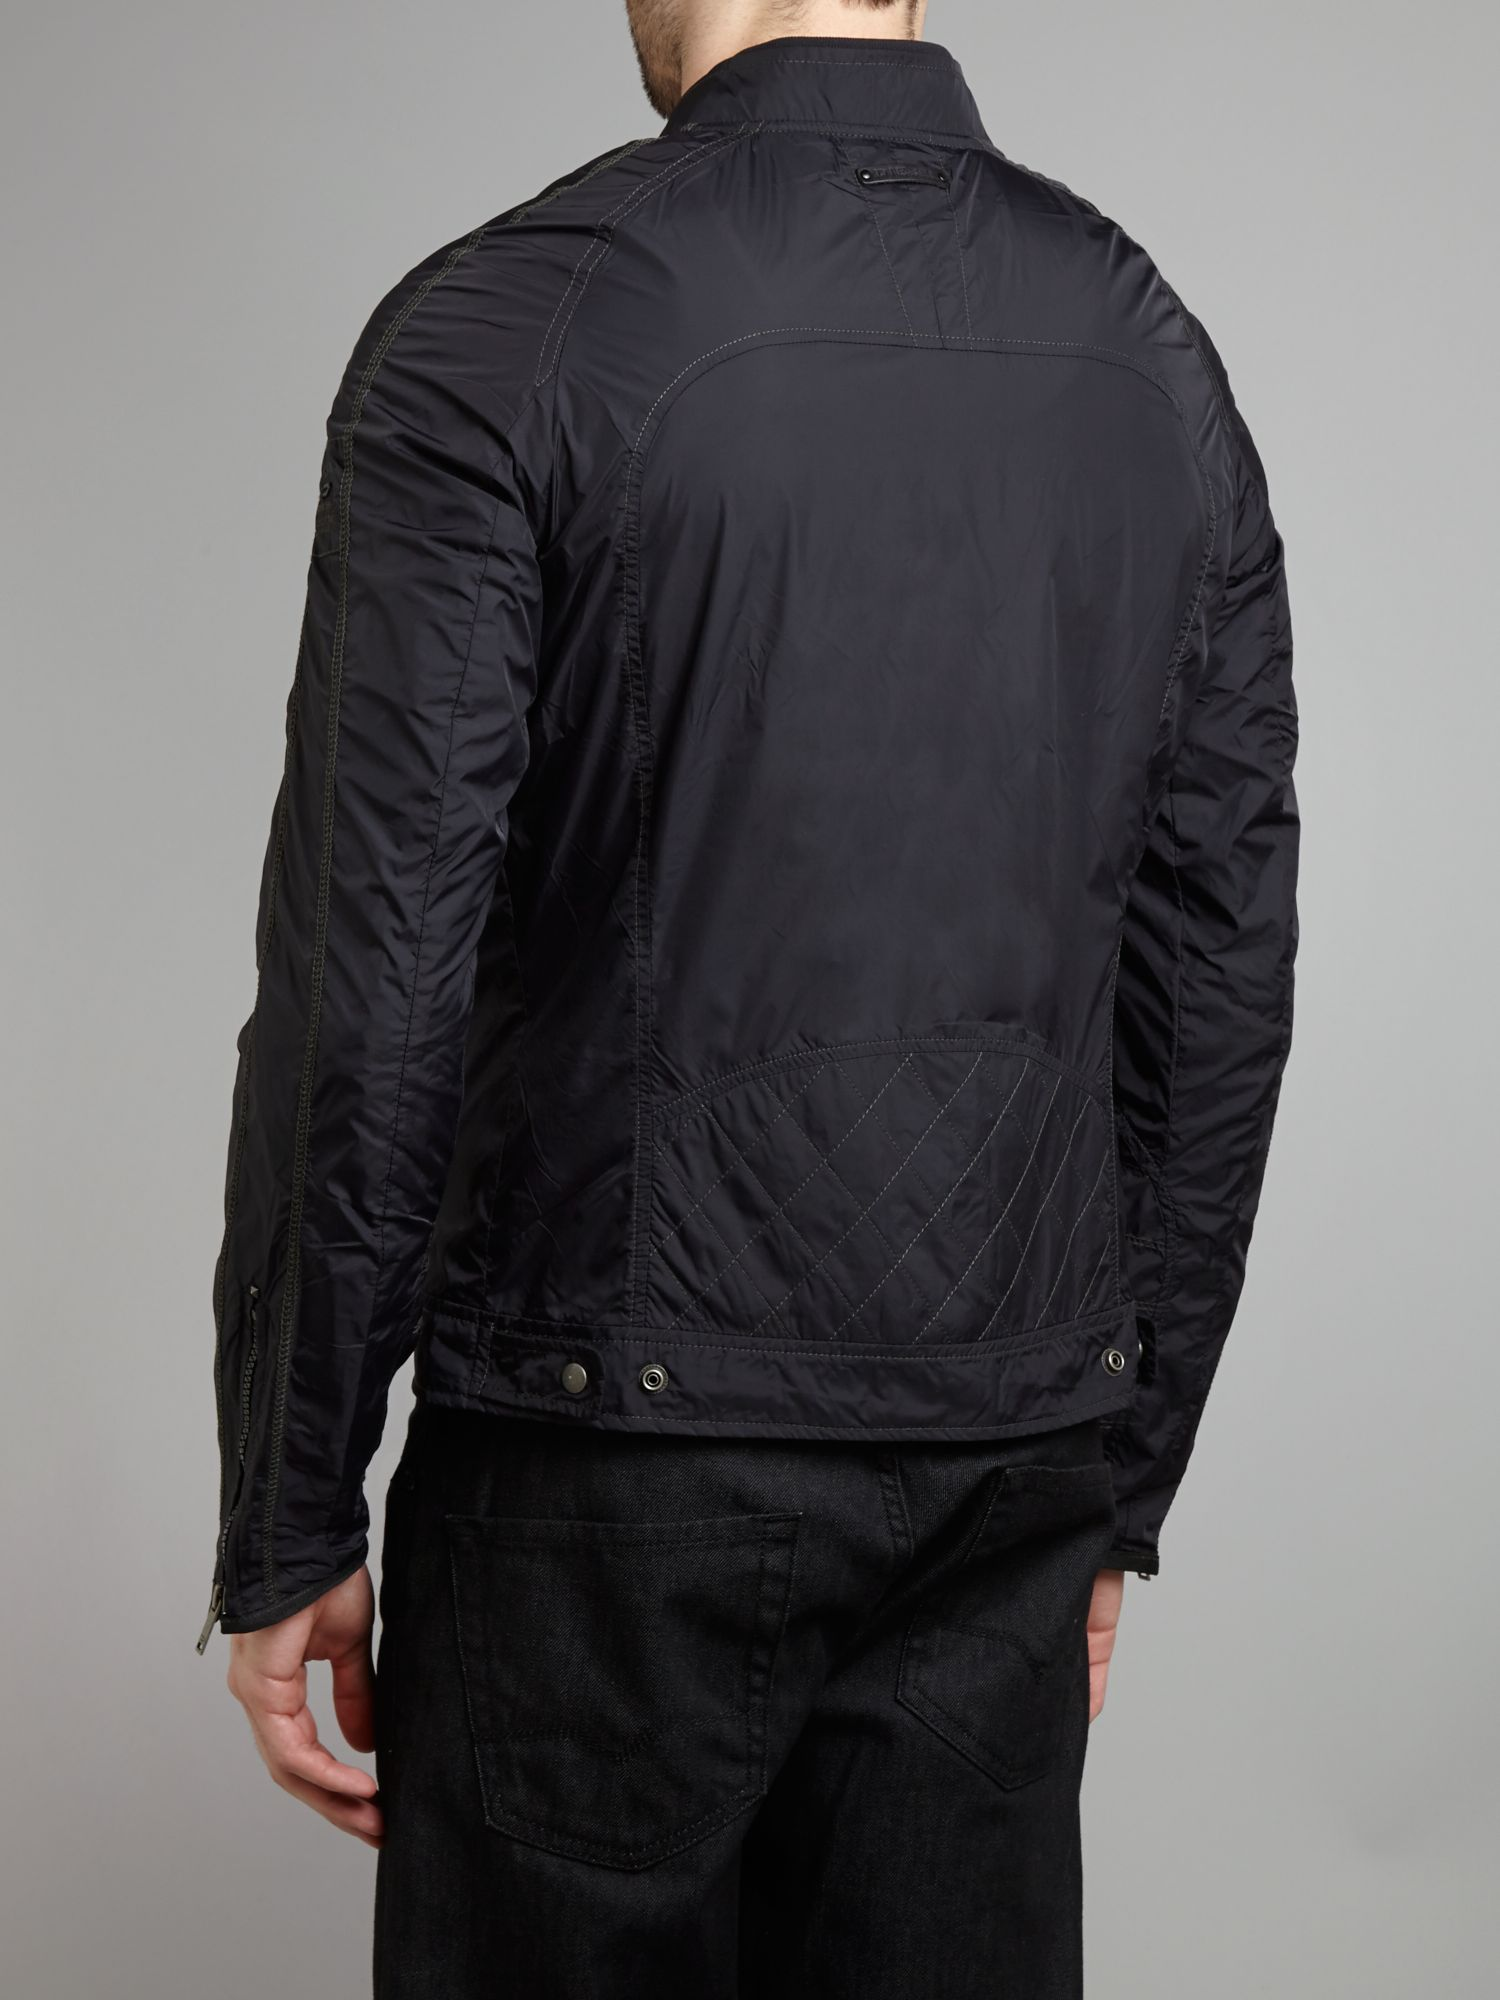 Lyst Diesel Nylon Biker Jacket In Black For Men